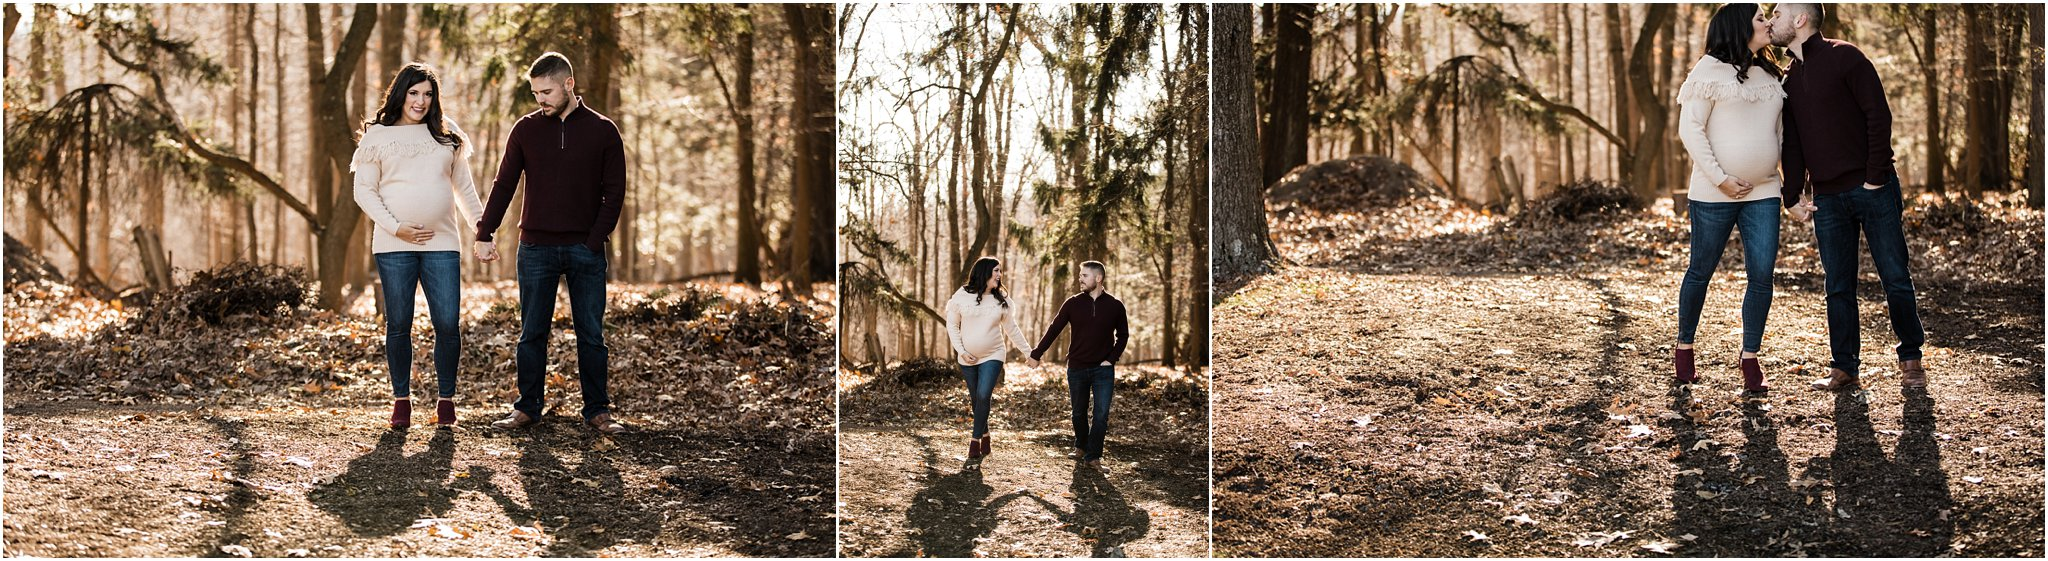 couple walking and laughing during maternity session